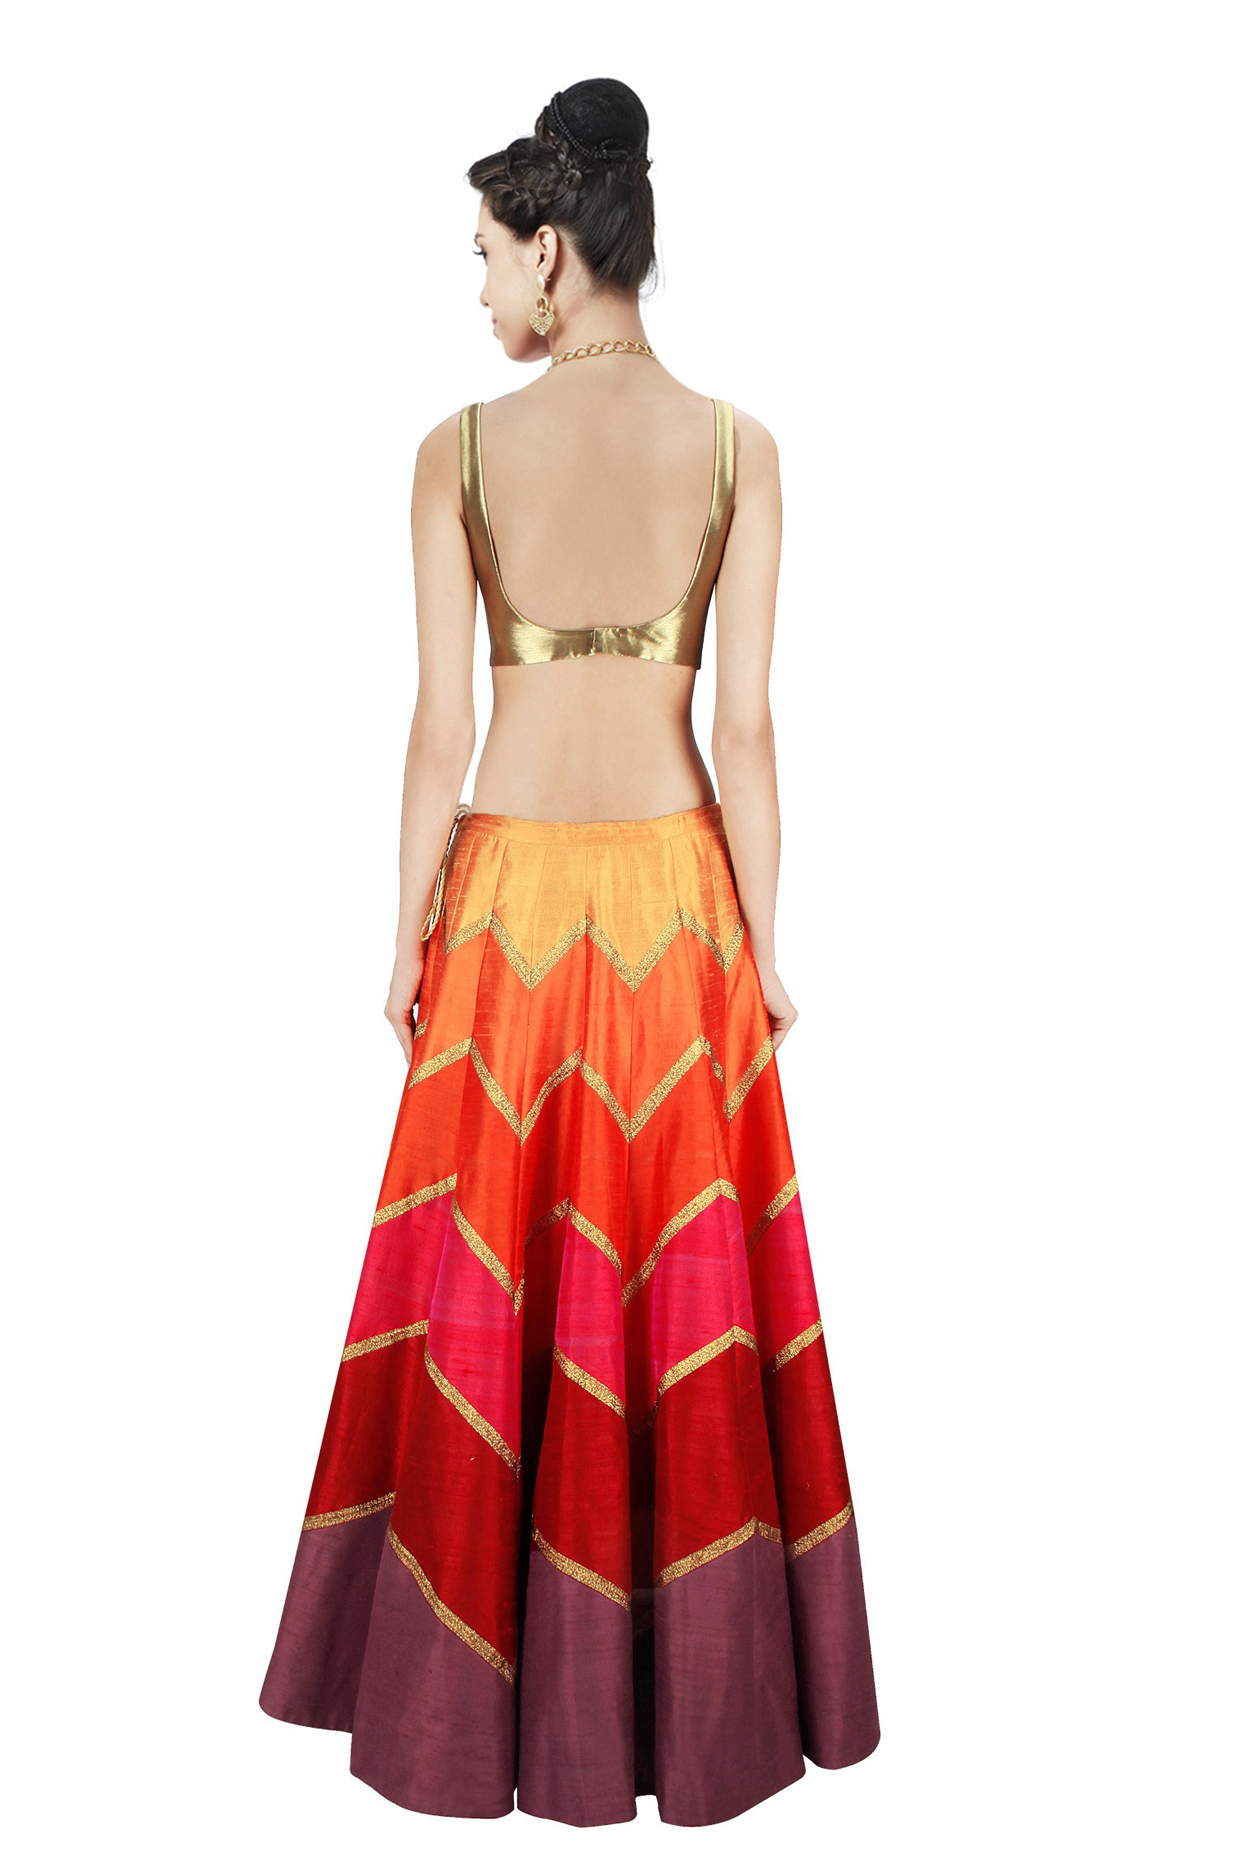 Multicolored Banglori Silk Lehenga Choli